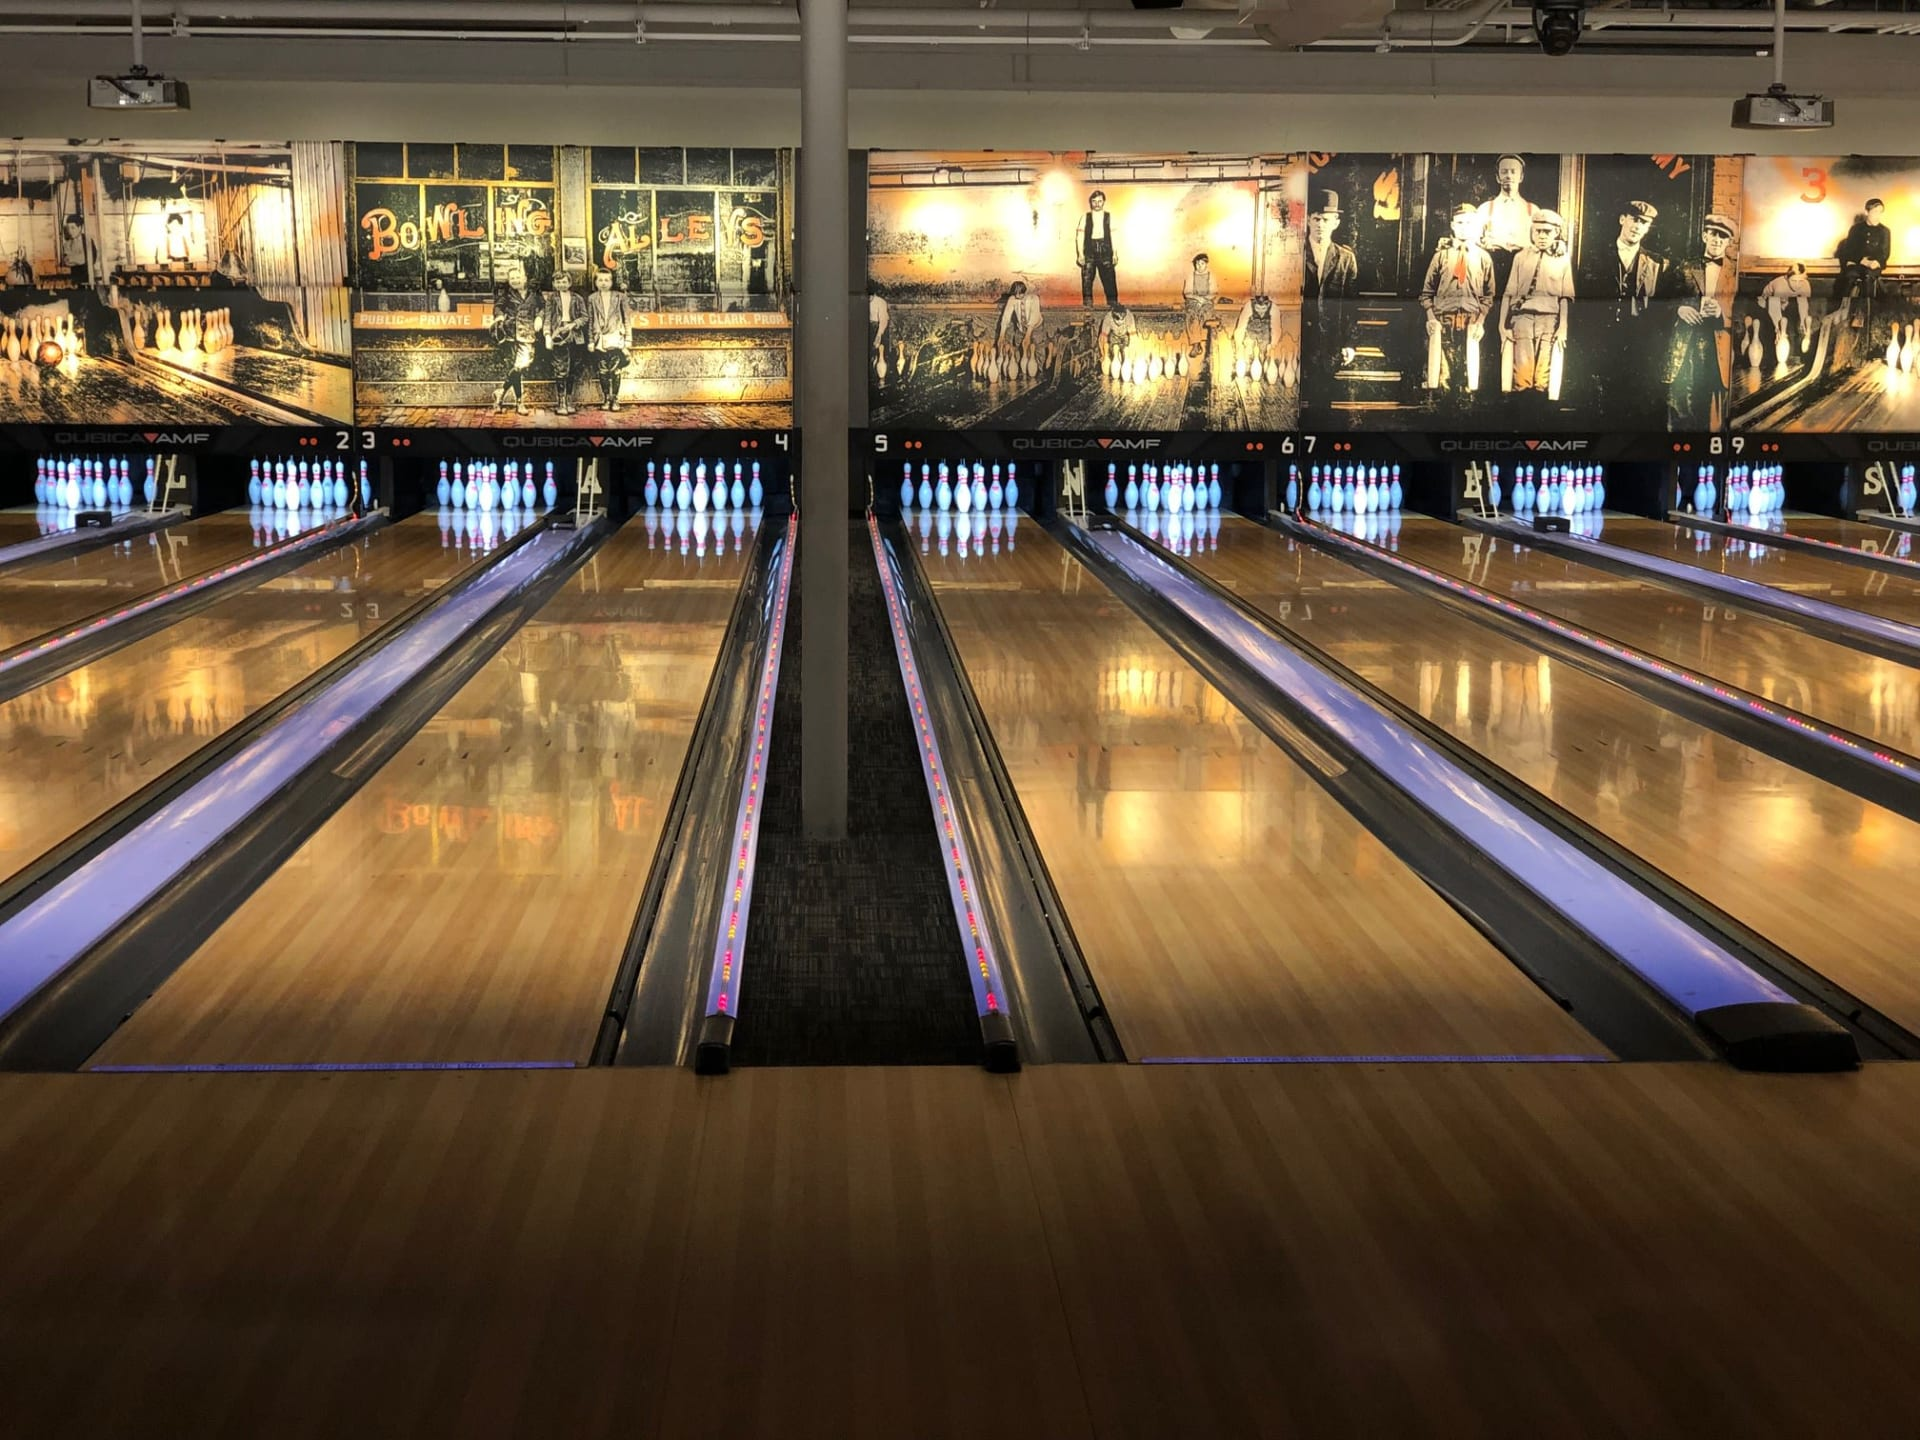 The Lanes Bowl & Bistro